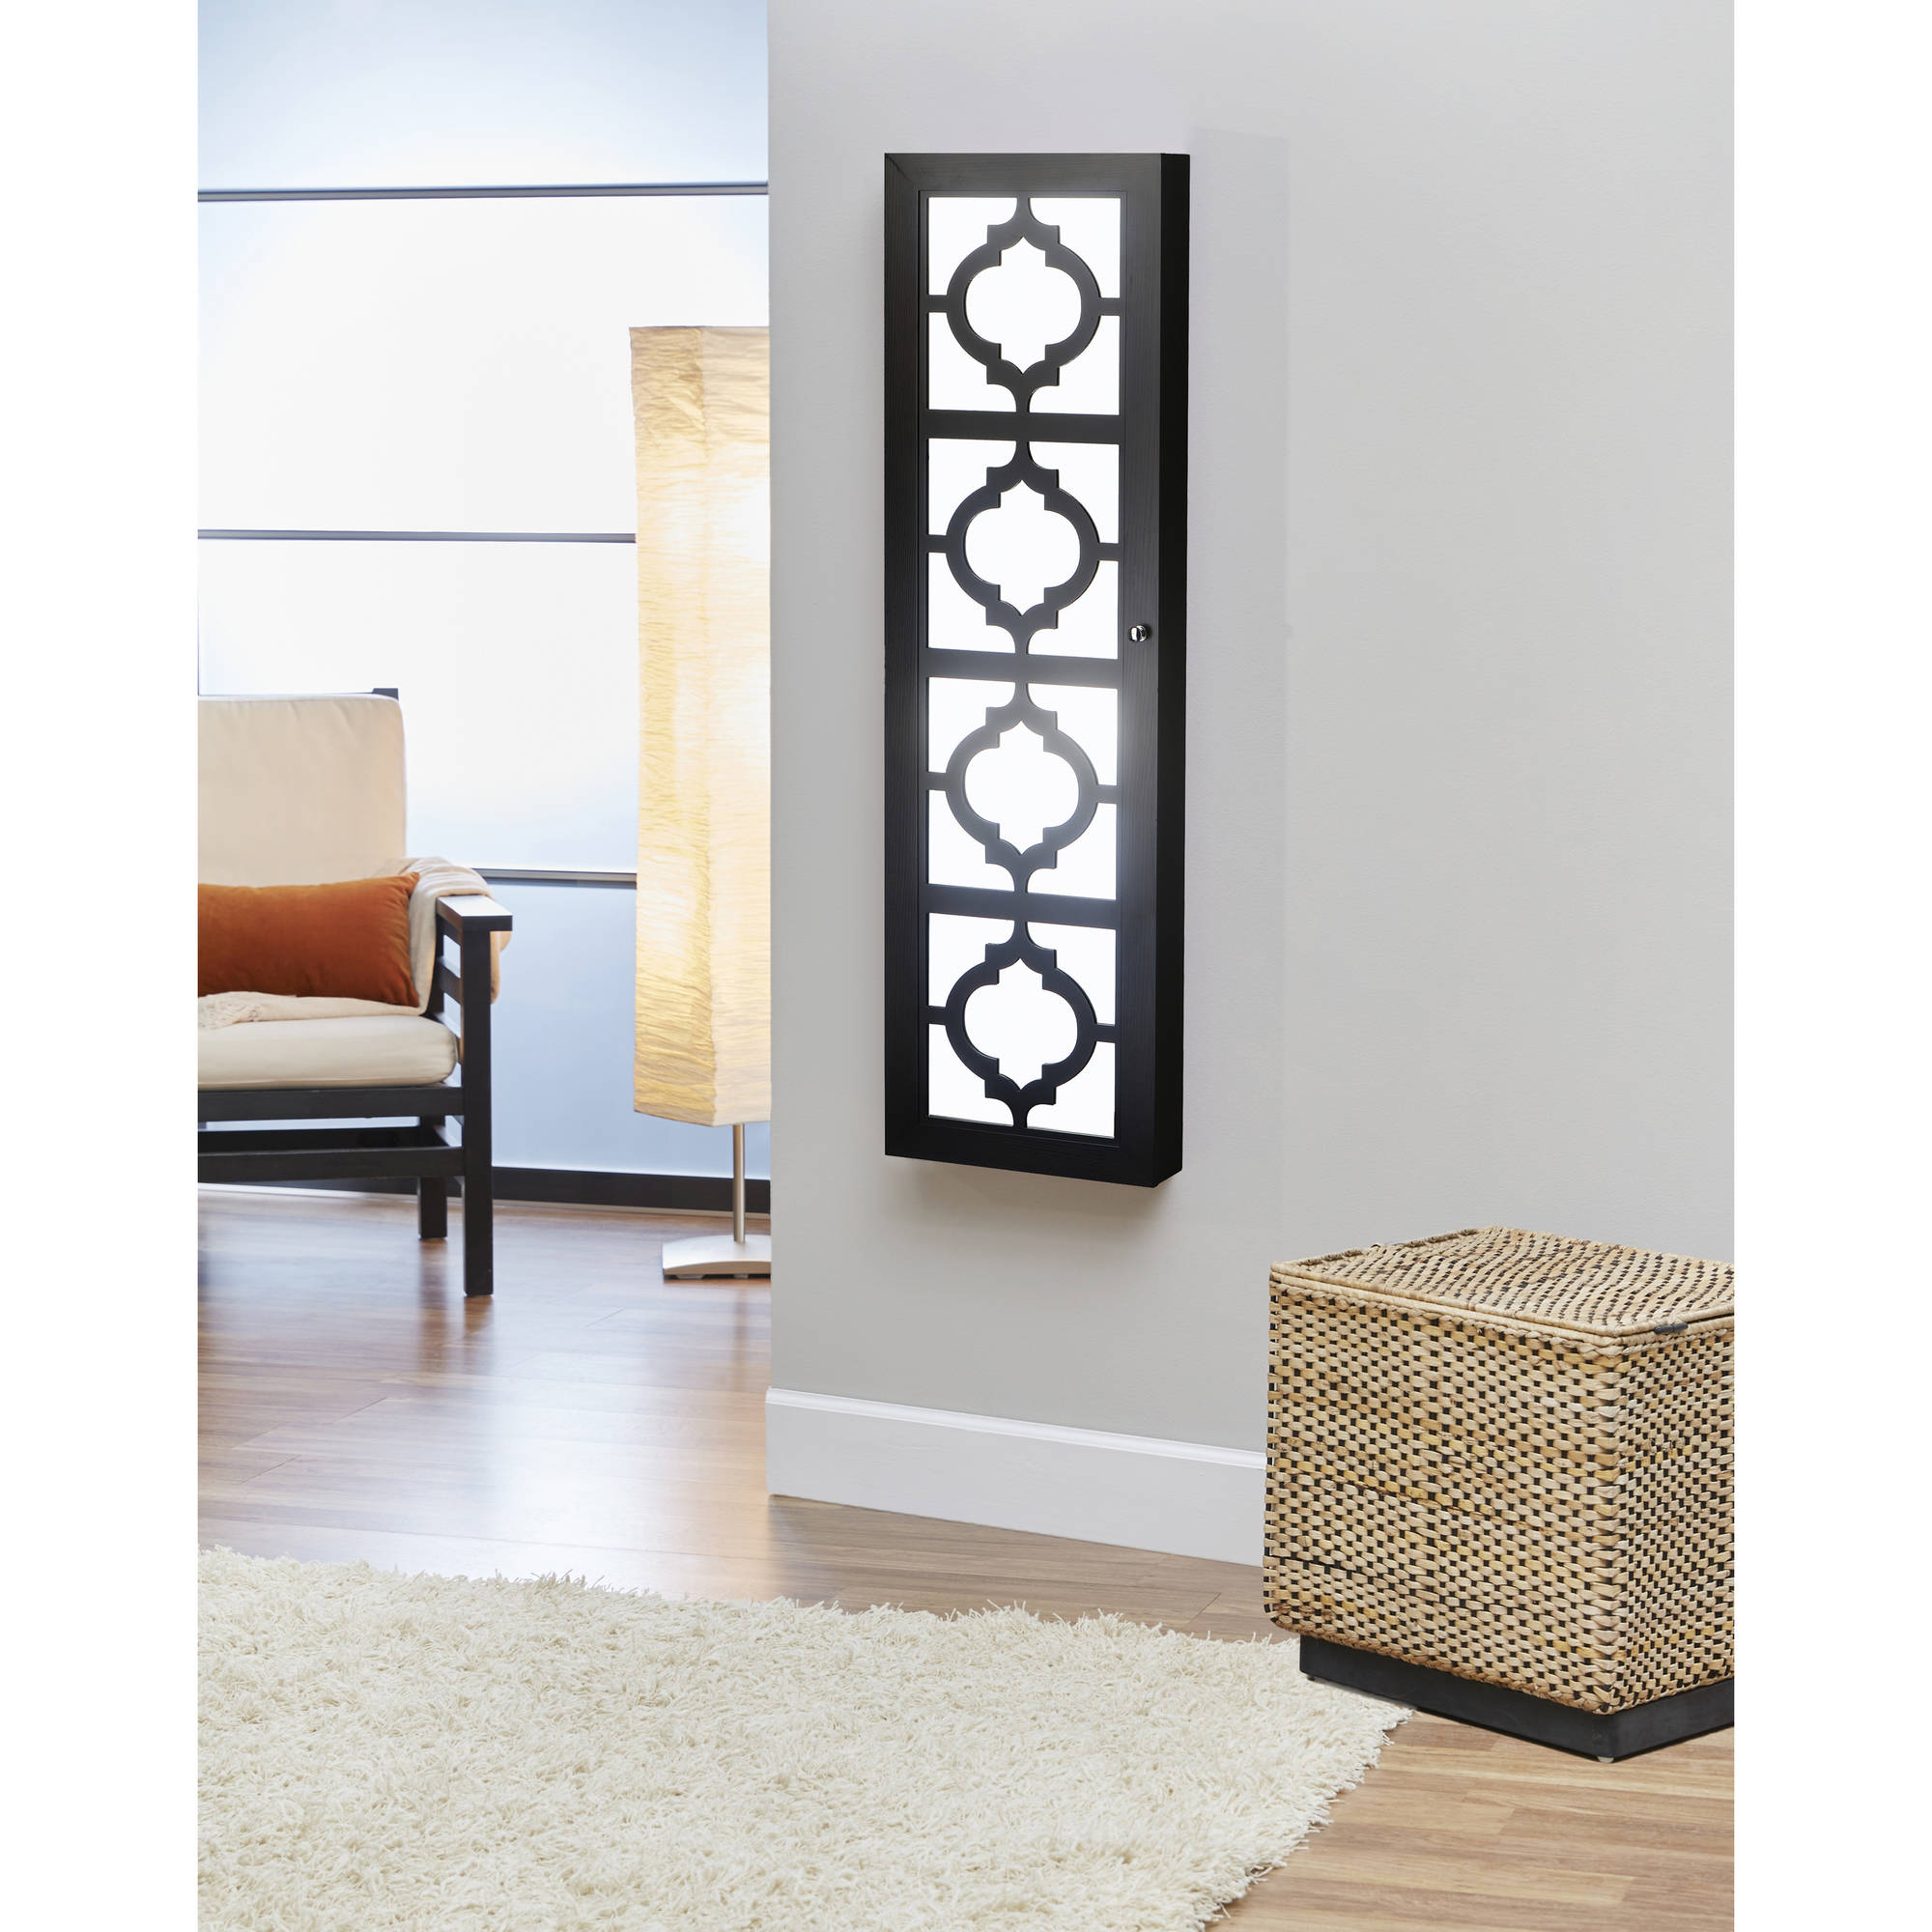 FirsTime & Co. Designer Jewelry Armoire with Decorative Front